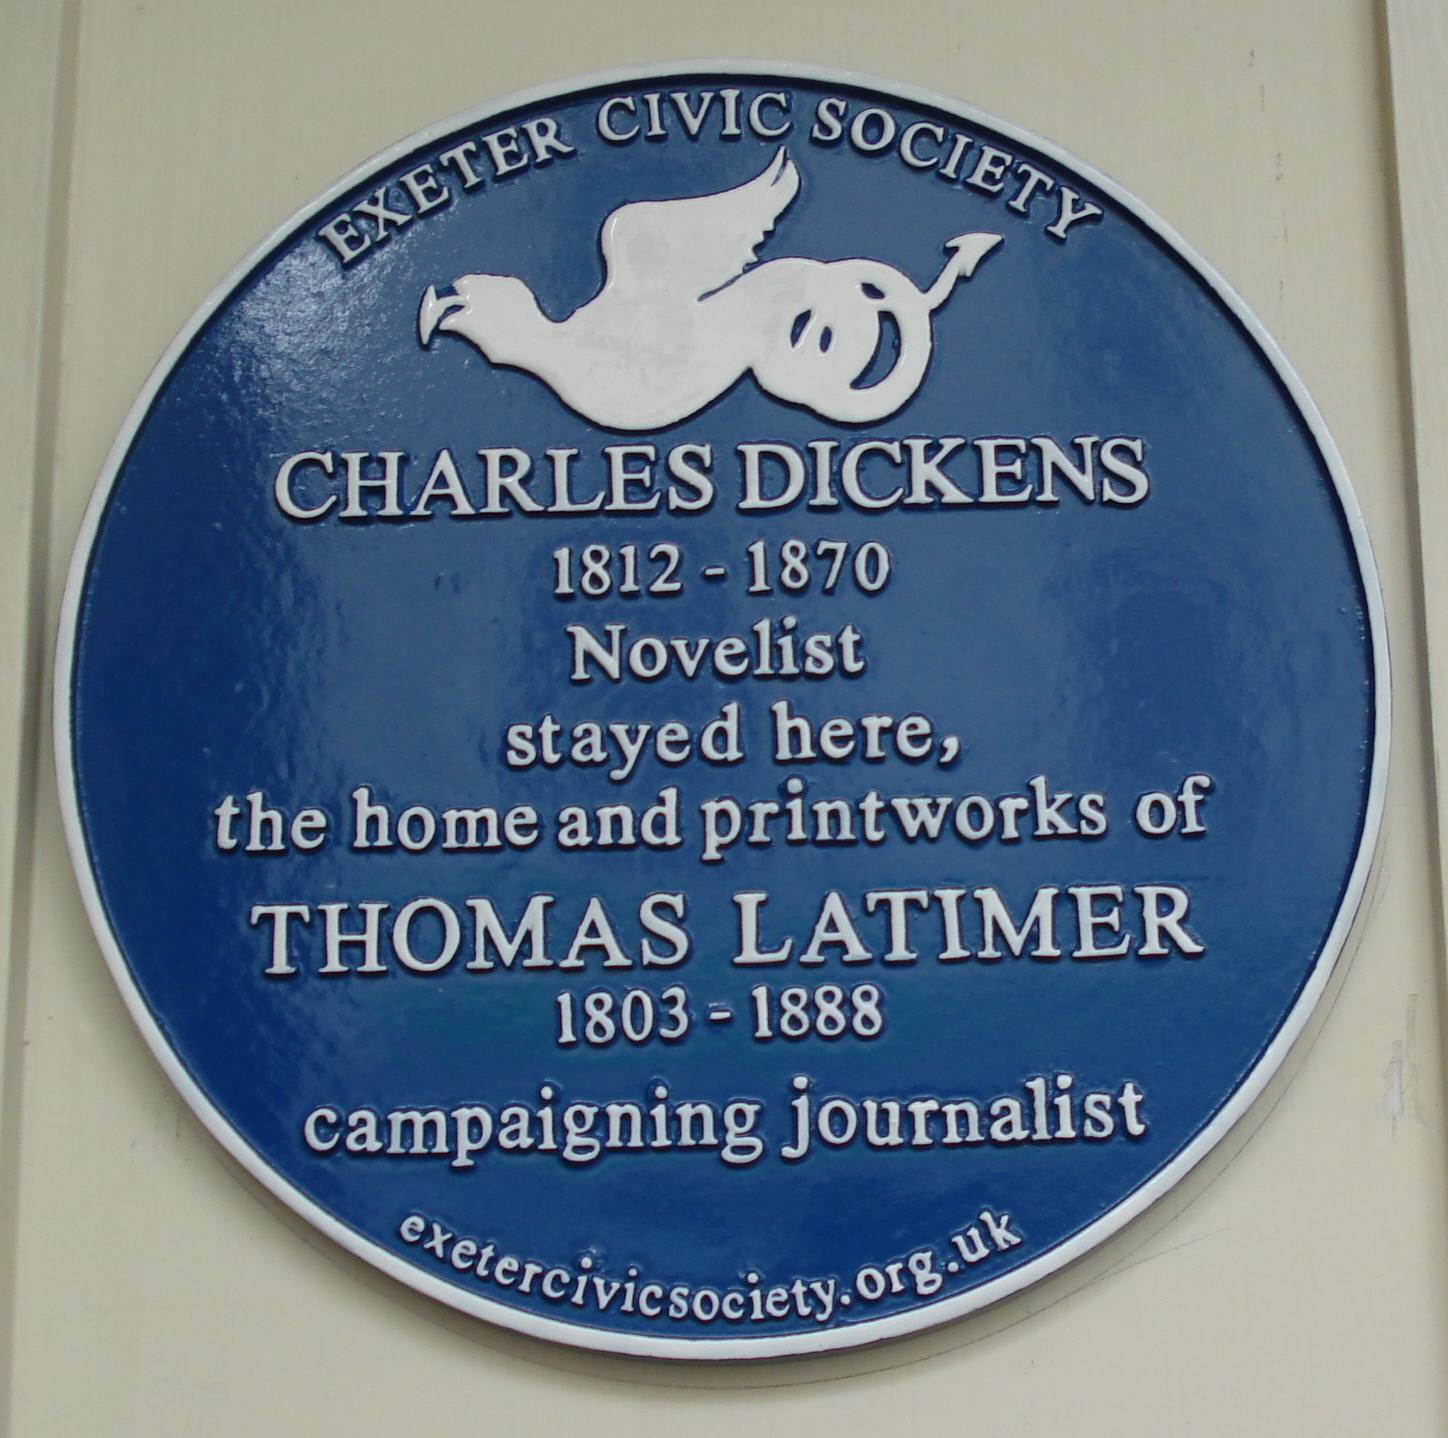 Charles Dickens and Thomas Latimer